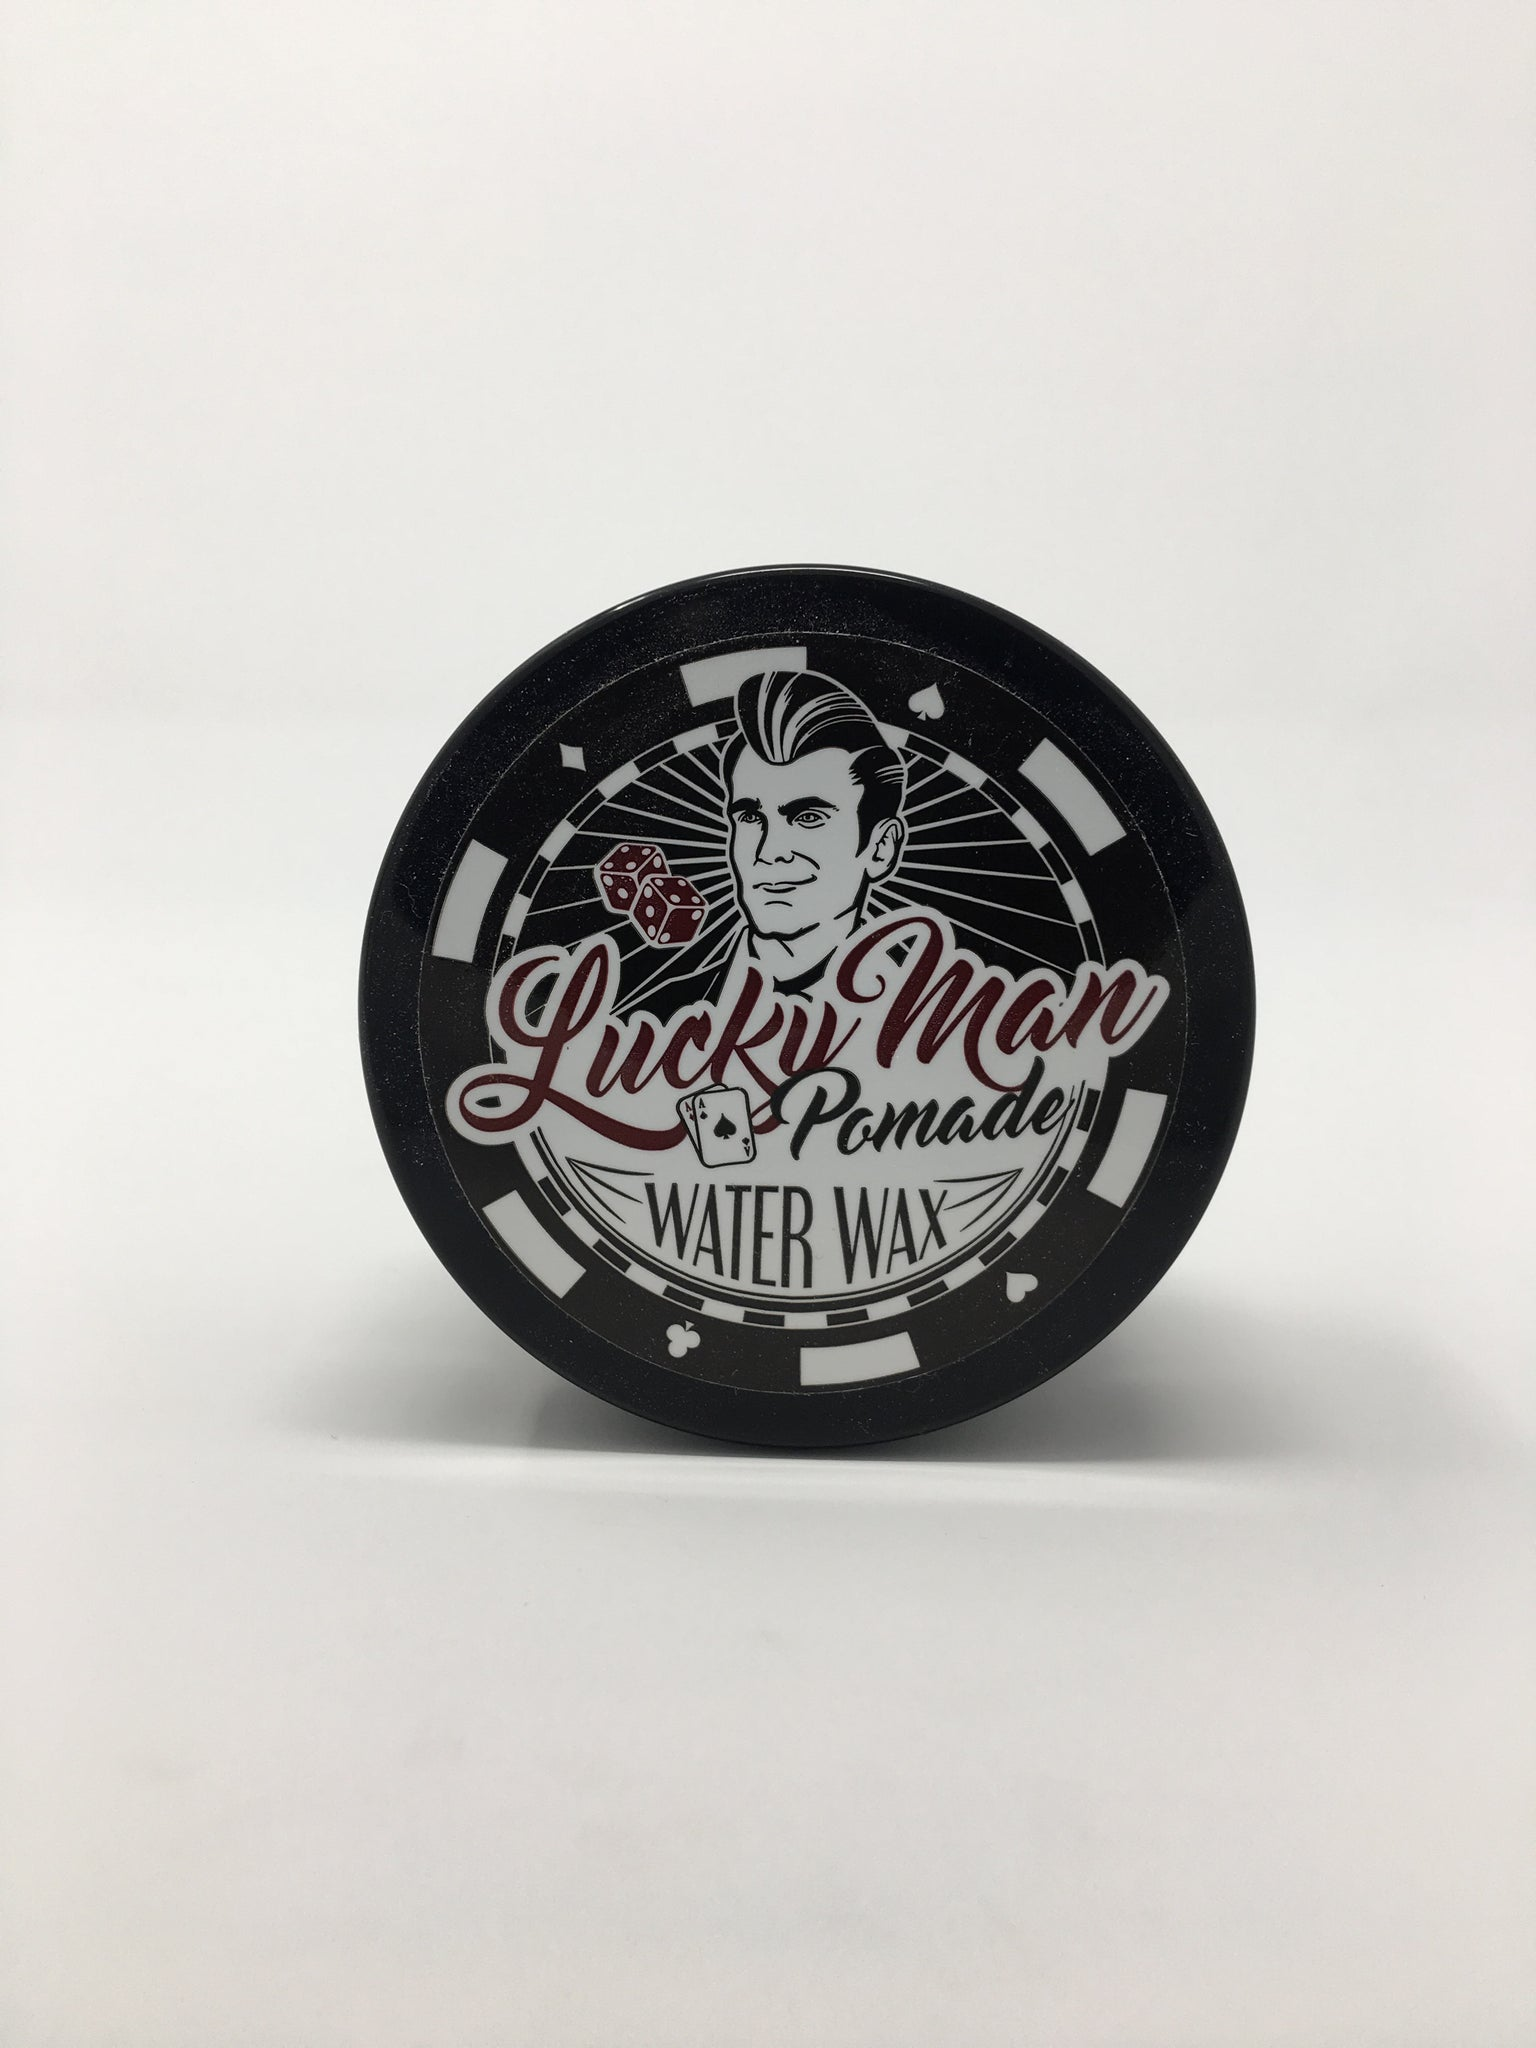 LUCKY MAN WATER WAX